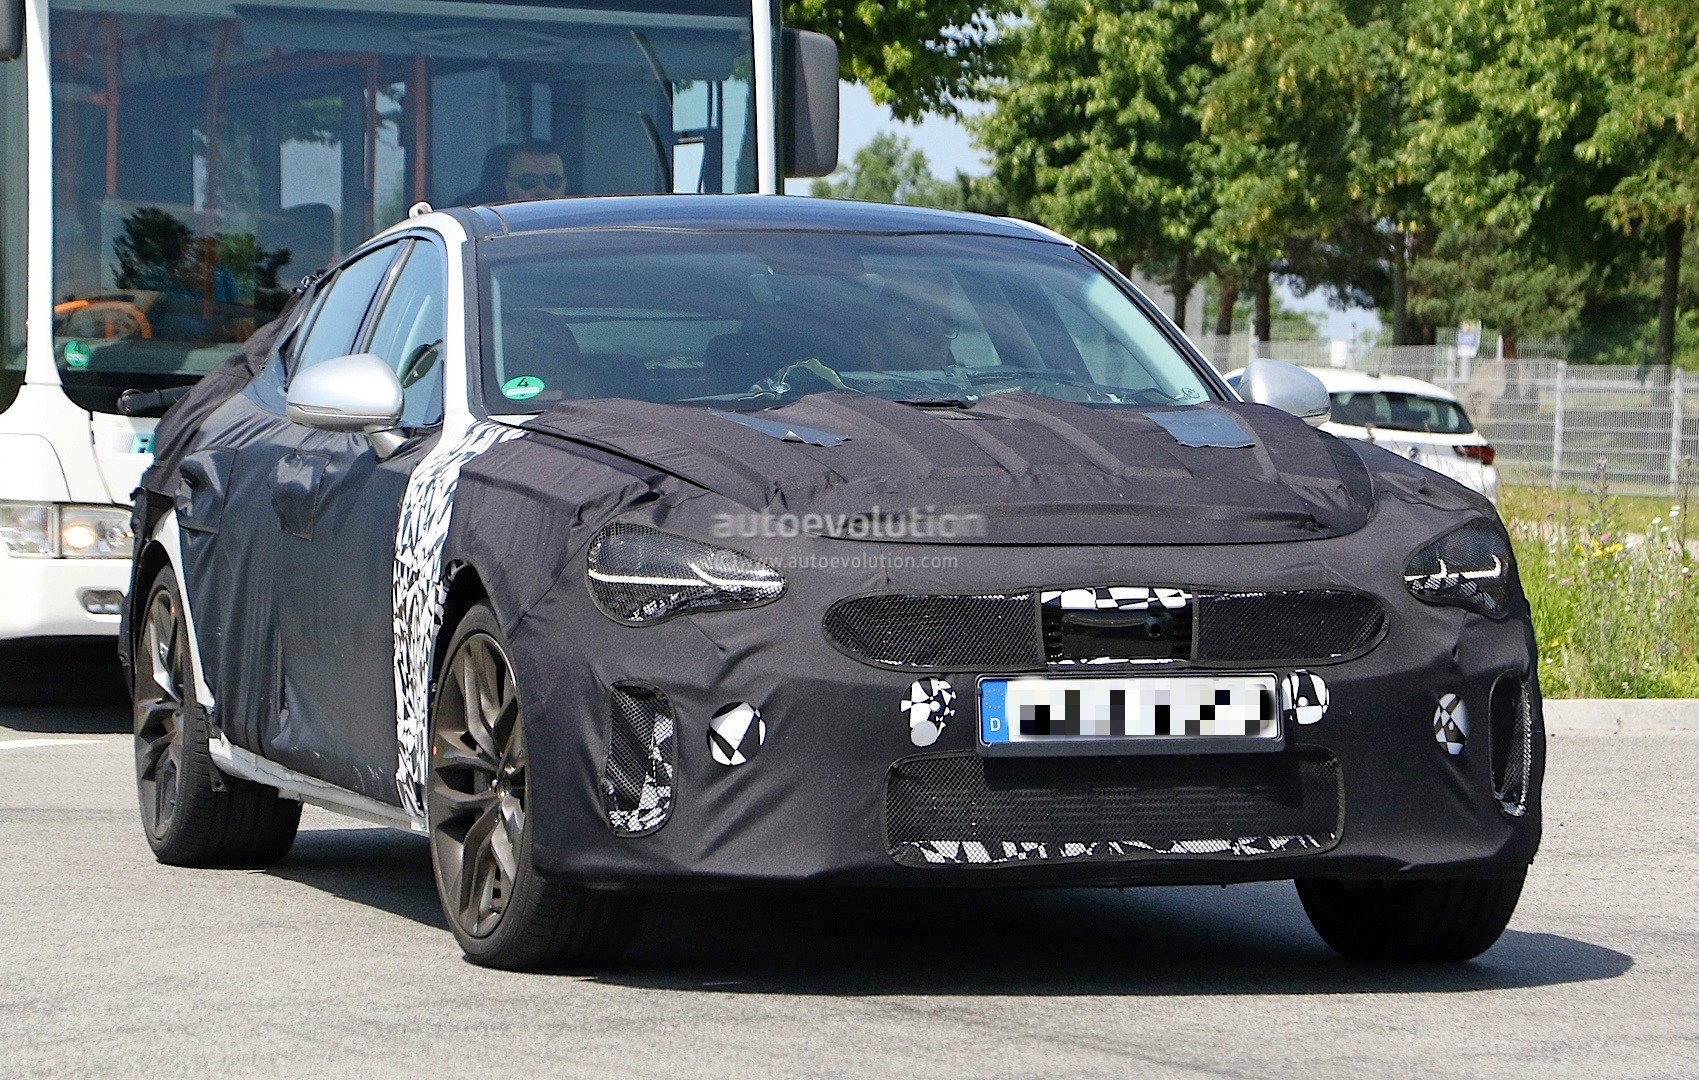 2018-kia-g​t-spied-in​-germany-c​ould-to-be​-called-st​inger_2